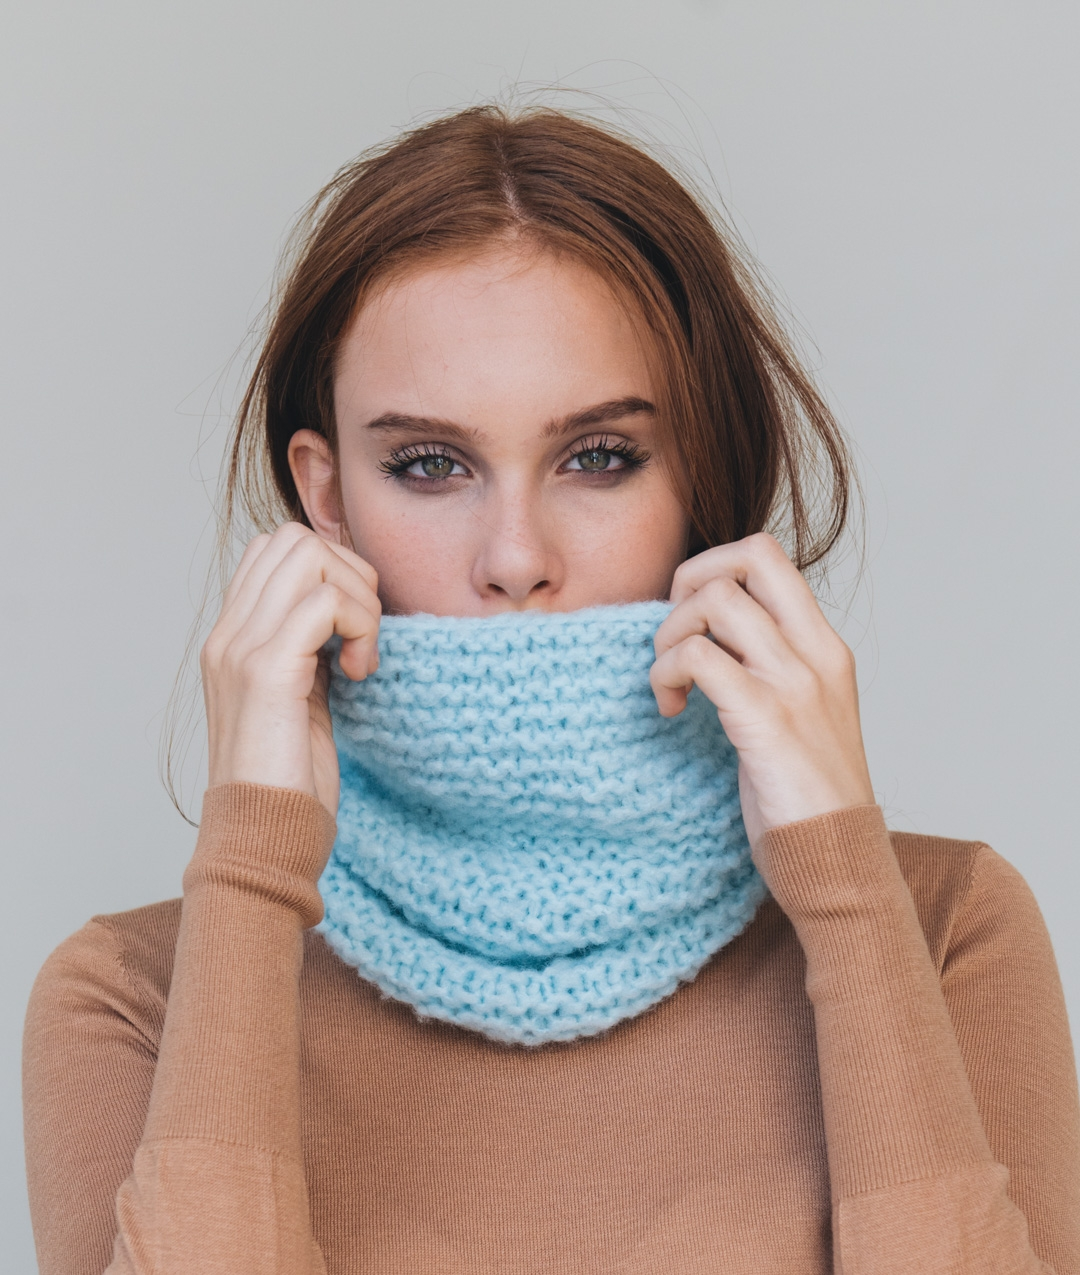 Sweaters and Tops - WoolScarves and Snoods - Wool - CANDY DONUT SNOOD - 1